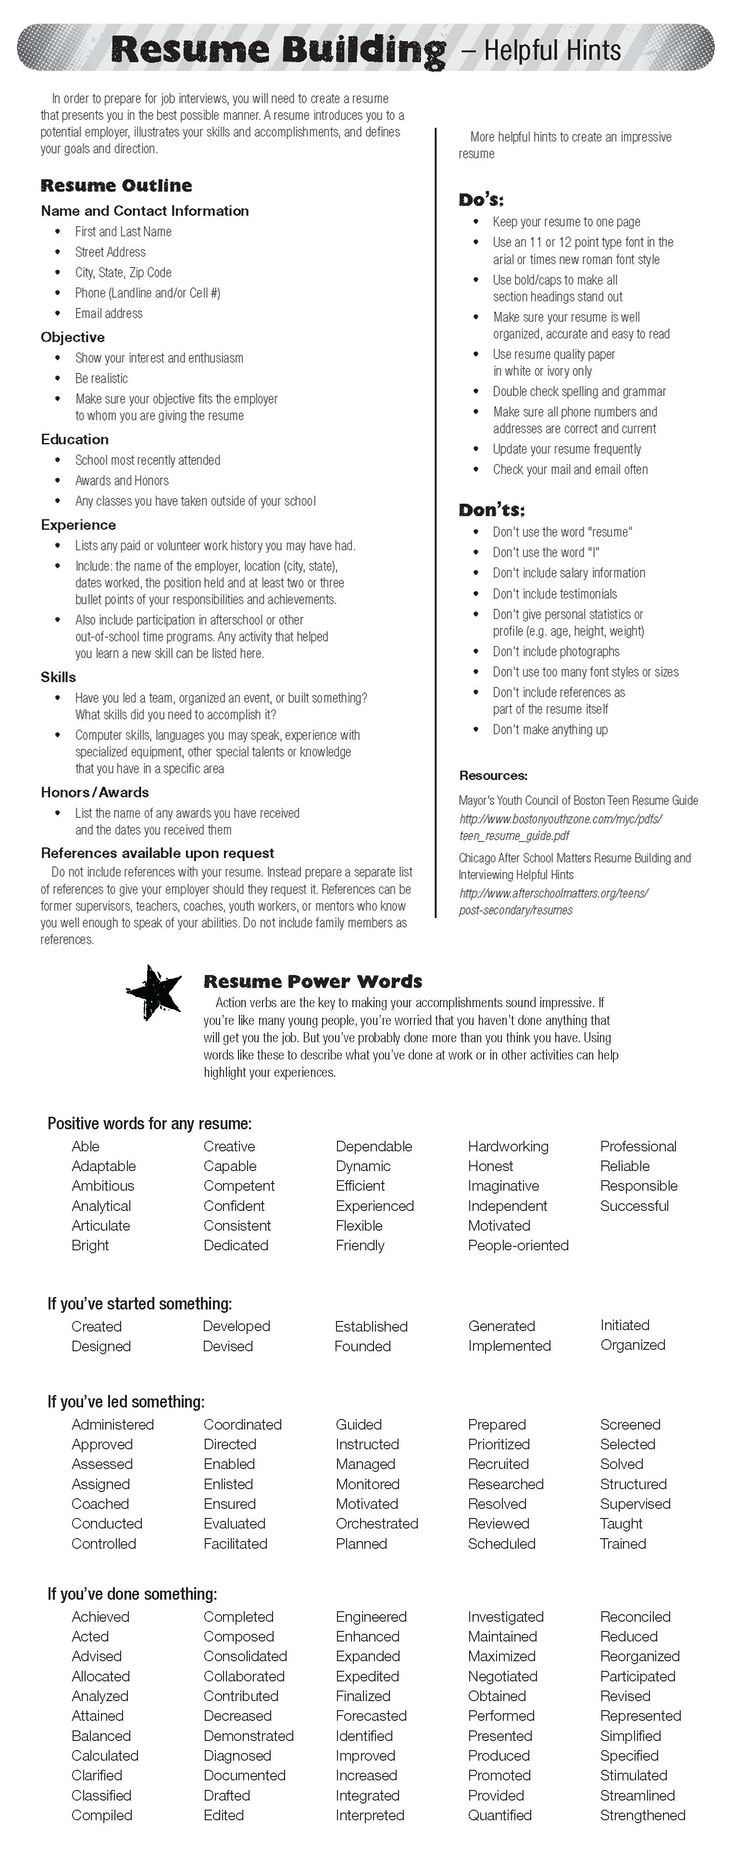 Opposenewapstandardsus  Personable  Ideas About Resume On Pinterest  Cv Format Resume Cv And  With Goodlooking  Ideas About Resume On Pinterest  Cv Format Resume Cv And Resume Templates With Beauteous Resume For Nurses Also Summary Resume Examples In Addition Free Resume Review And How To Make A Resume With No Work Experience As Well As Read Write Think Resume Generator Additionally Objective Section Of Resume From Pinterestcom With Opposenewapstandardsus  Goodlooking  Ideas About Resume On Pinterest  Cv Format Resume Cv And  With Beauteous  Ideas About Resume On Pinterest  Cv Format Resume Cv And Resume Templates And Personable Resume For Nurses Also Summary Resume Examples In Addition Free Resume Review From Pinterestcom